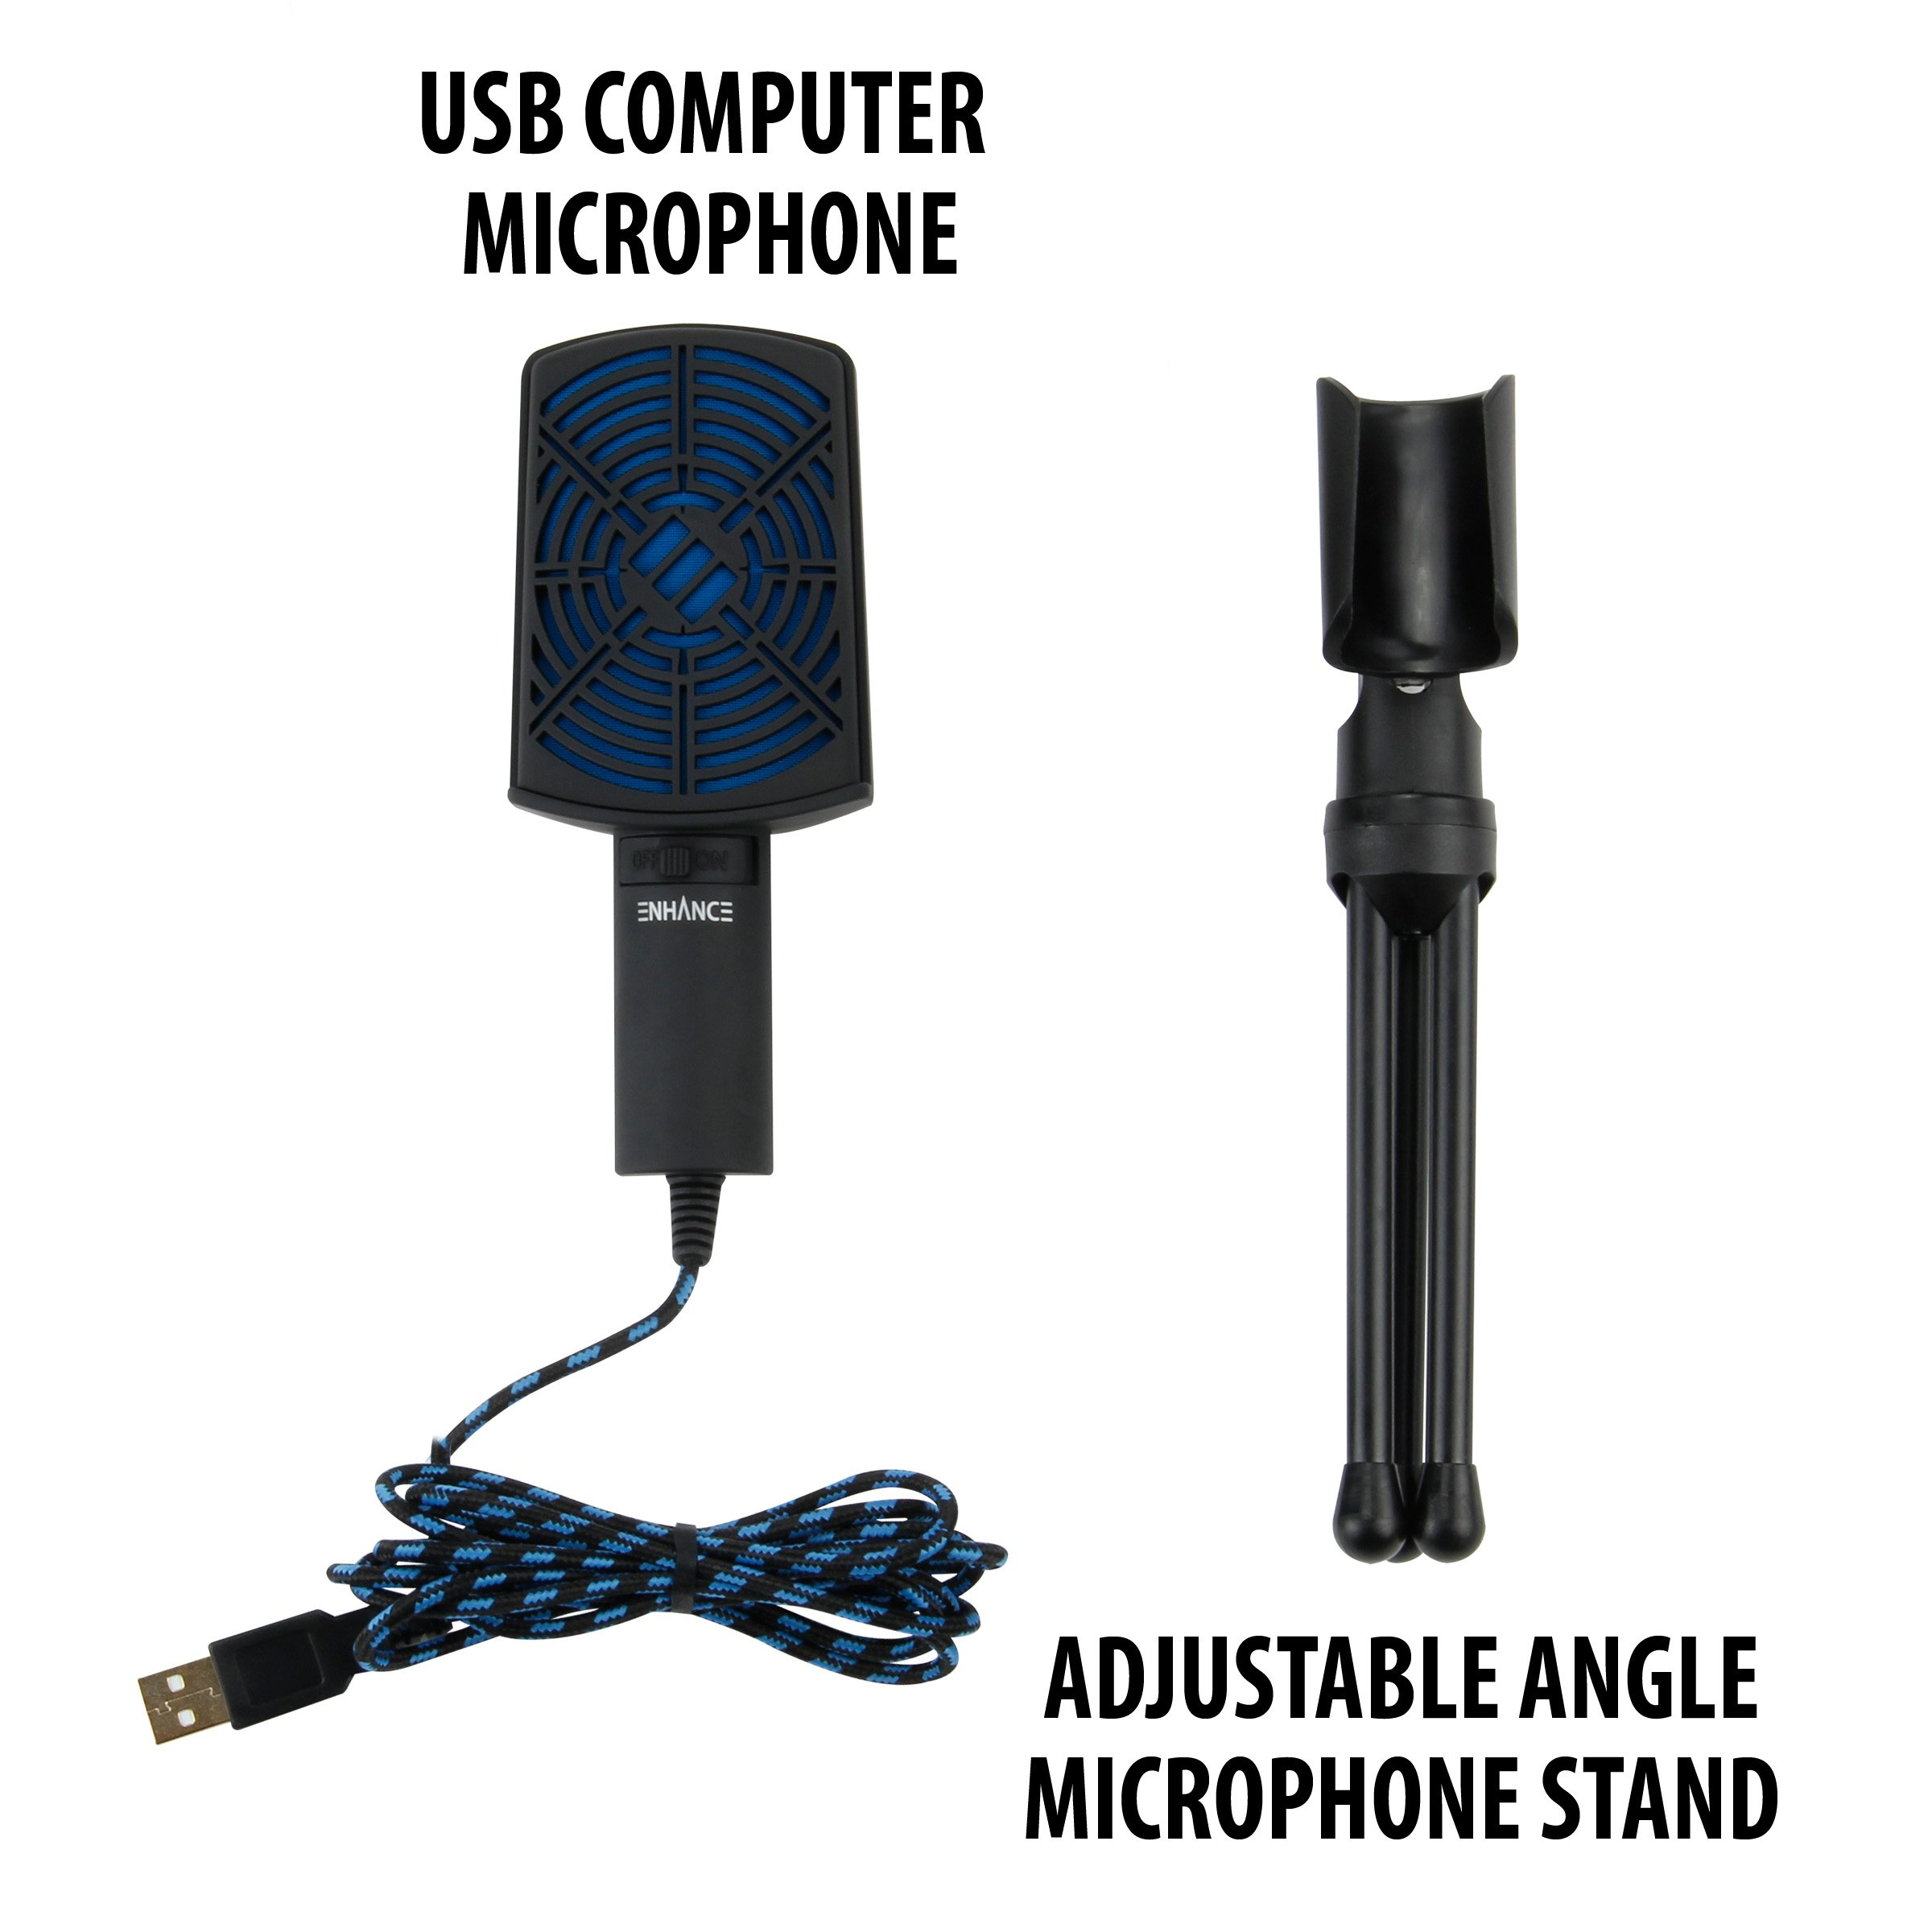 ENHANCE USB Condenser Gaming Microphone - Computer Desktop Mic for Streaming & Recording with Adjustable Stand Design and Mute Switch - For Skype, Conference Calls, Twitch, Youtube, and Discord - Blue by ENHANCE (Image #2)